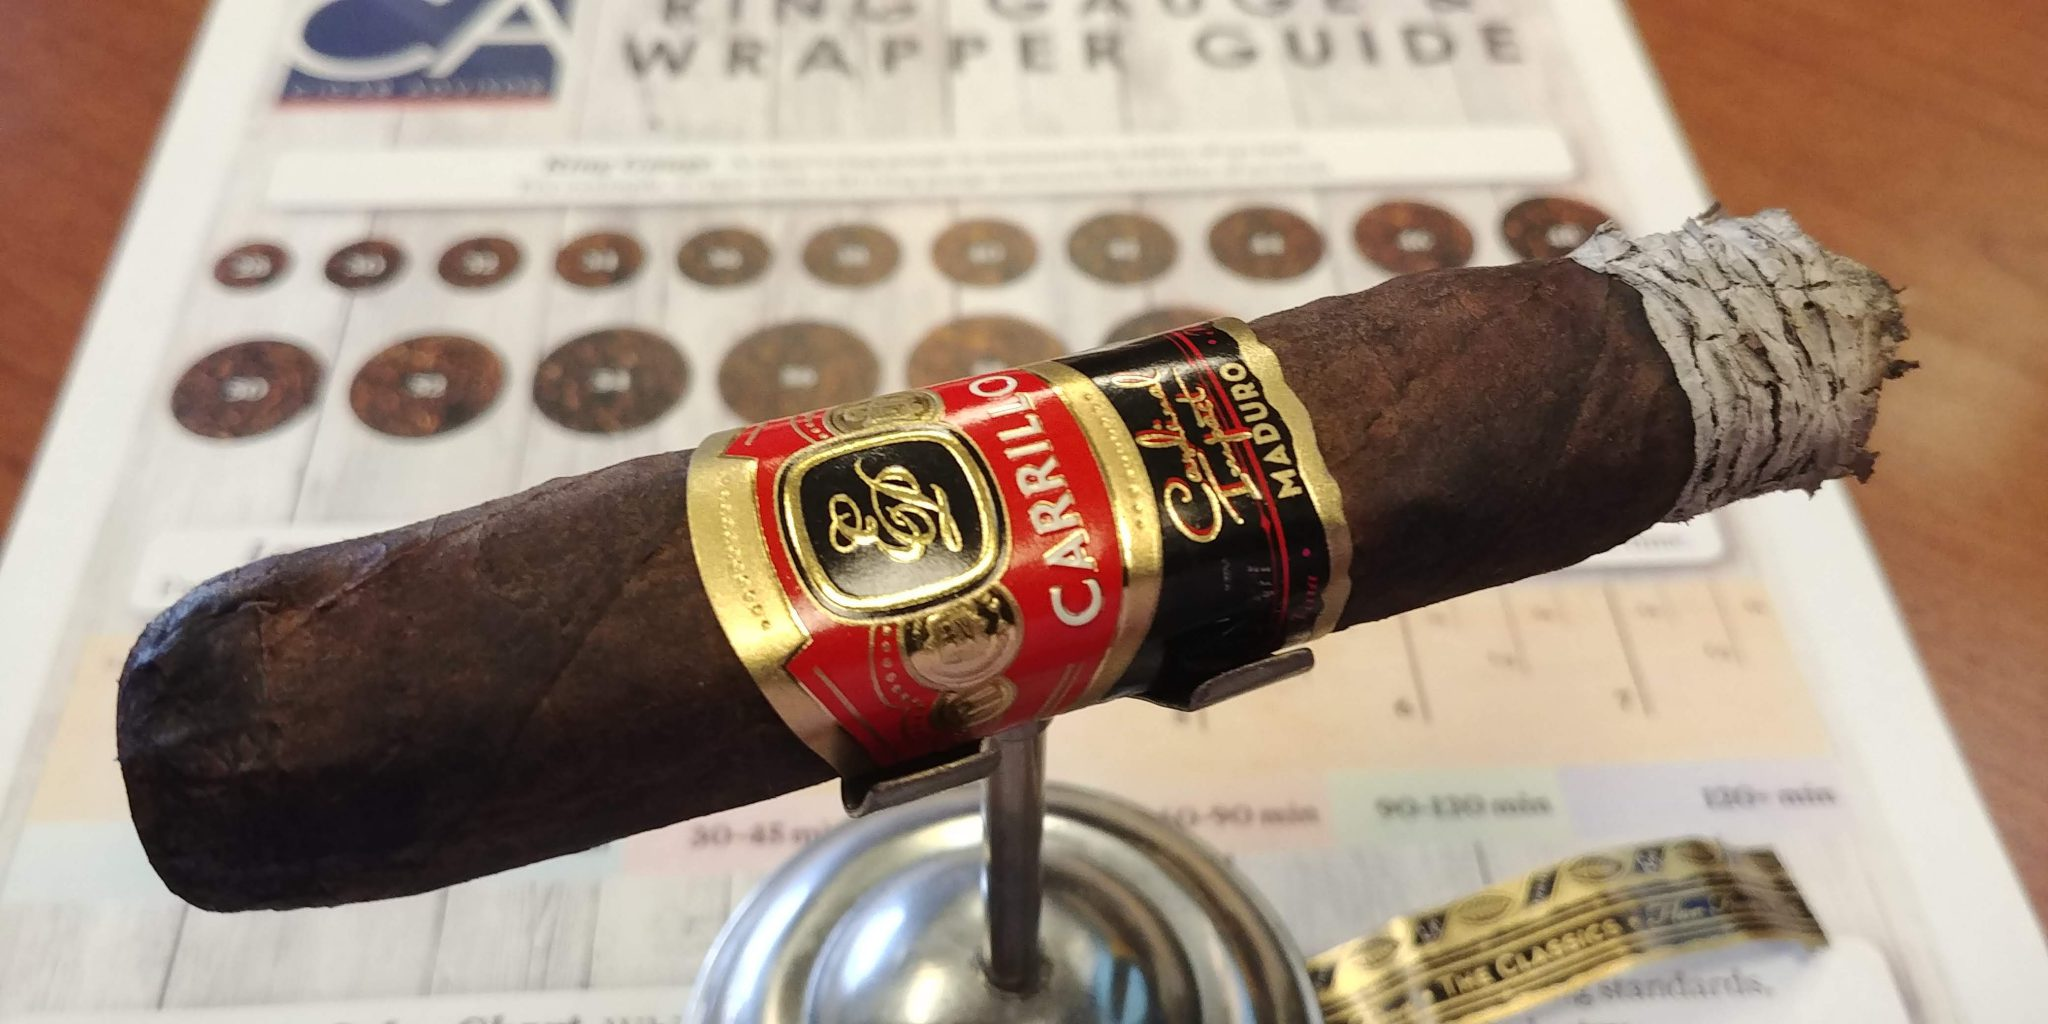 EPC EP Carrillo Cigars Guide EP Carrillo Cardinal Impact Maduro Cigar Review by John Pullo